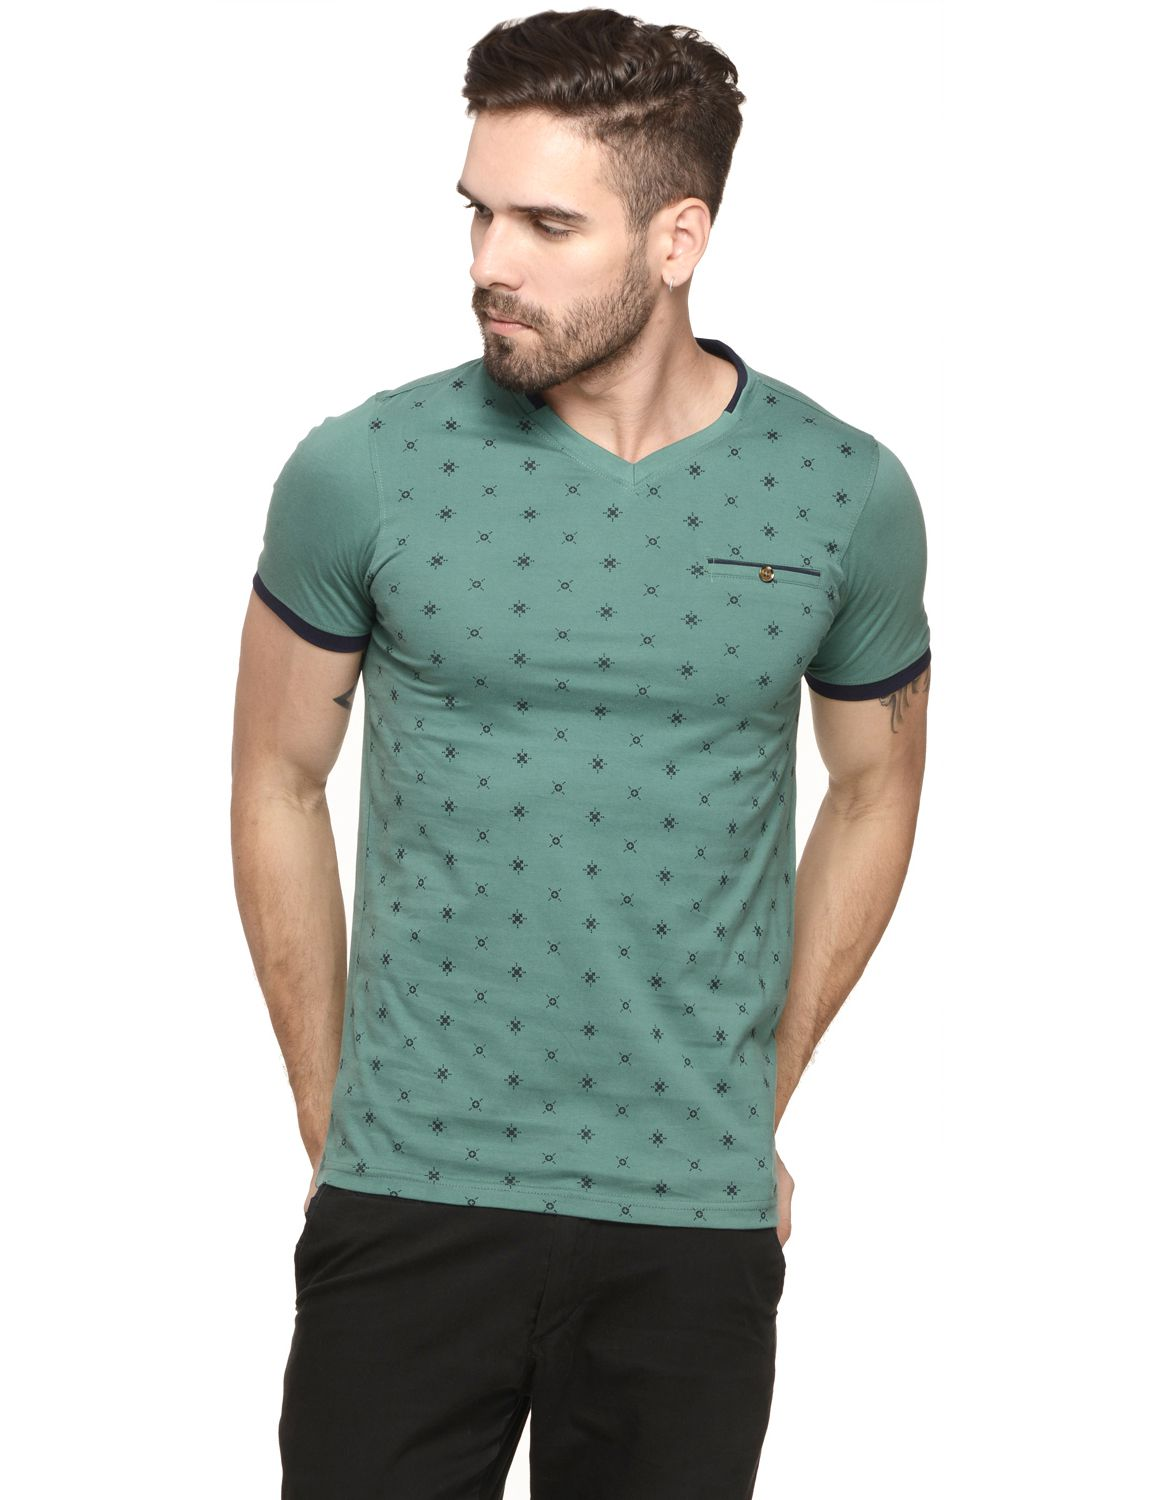 Mode Vetements Green V-Neck T-Shirt